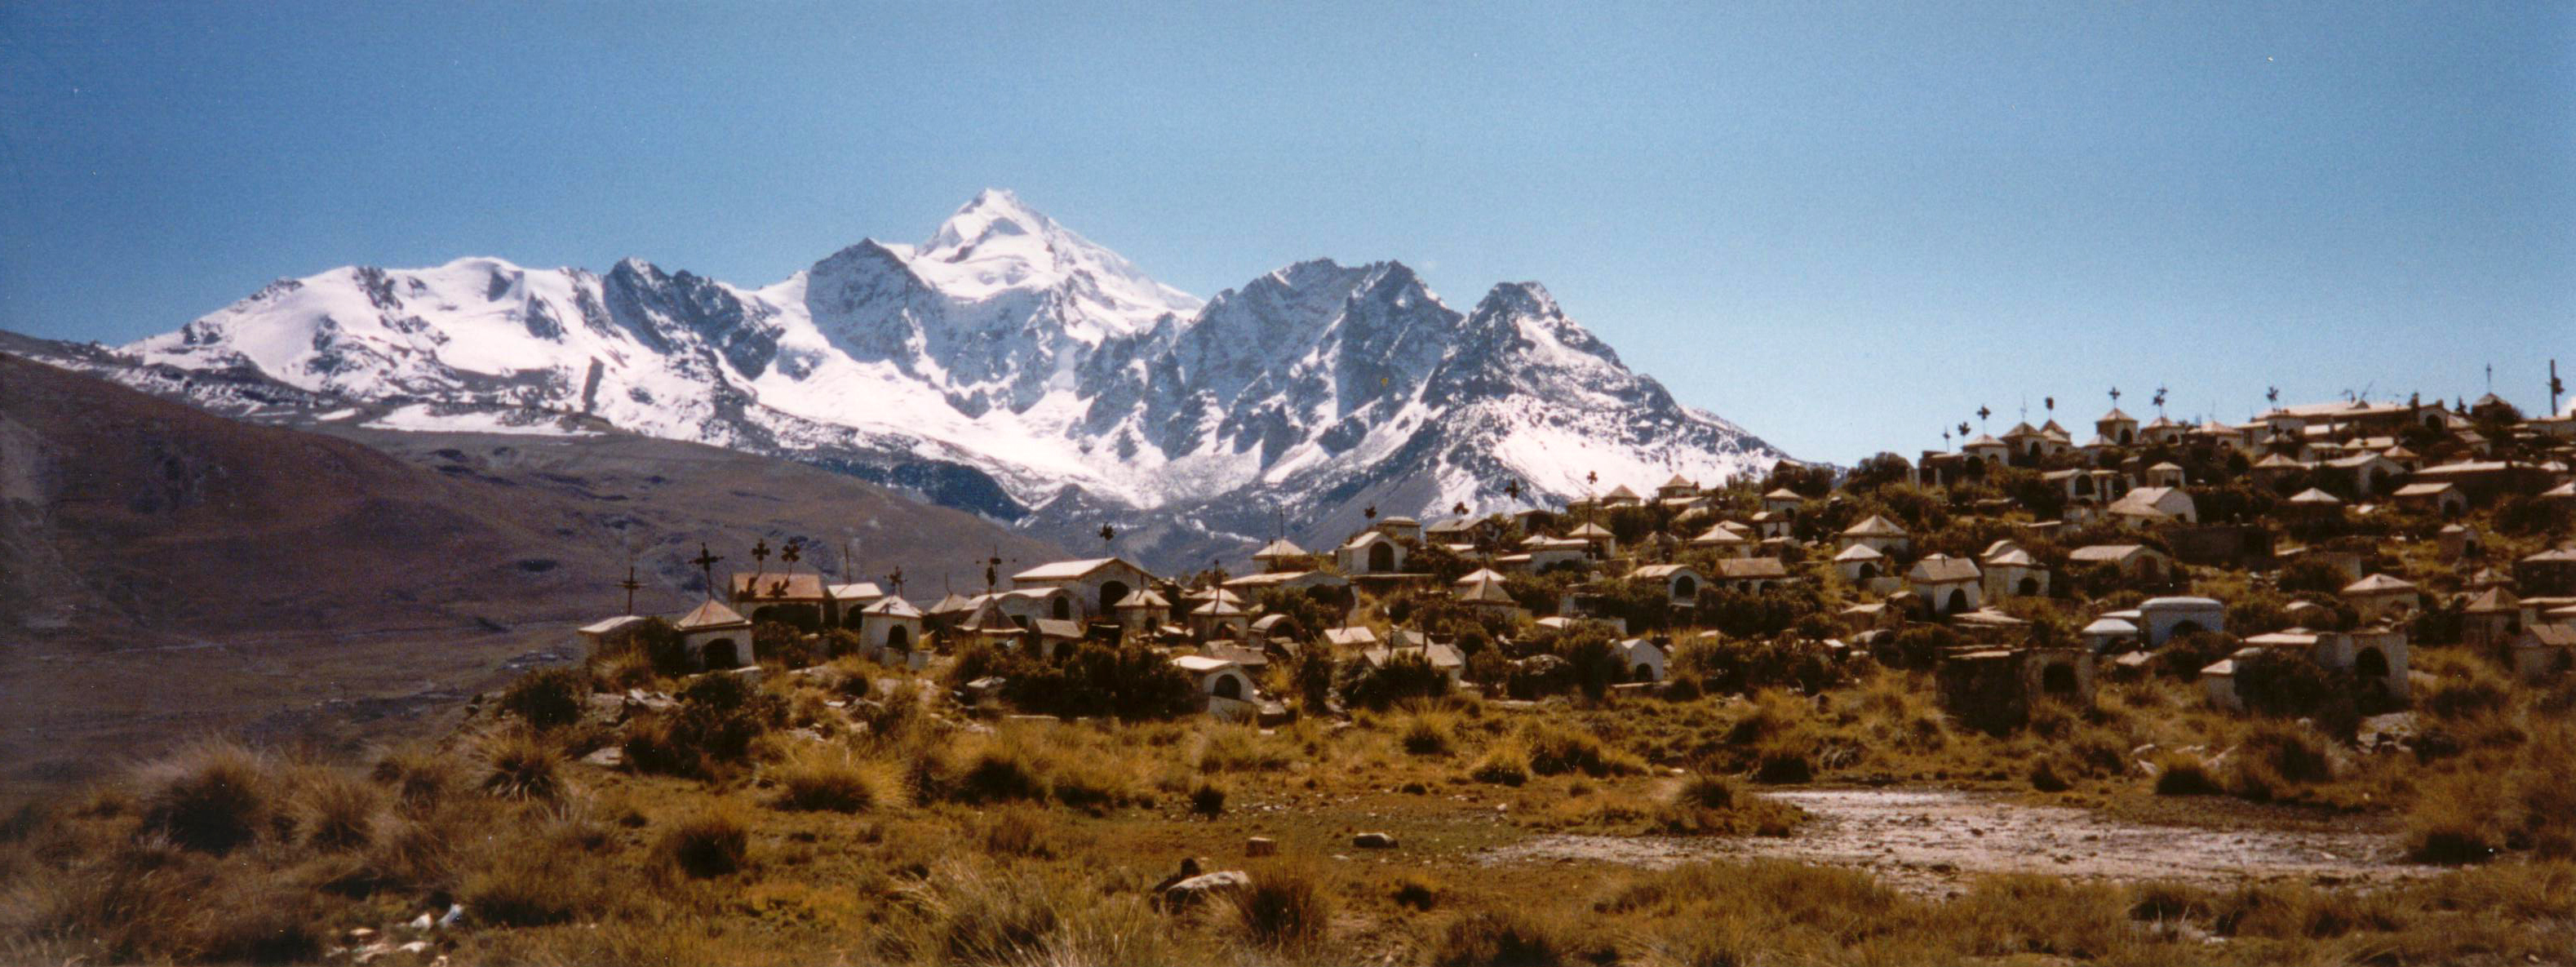 A view of Huayna Potosi on the drive to base camp.  In the foreground was a old graveyard for miners.